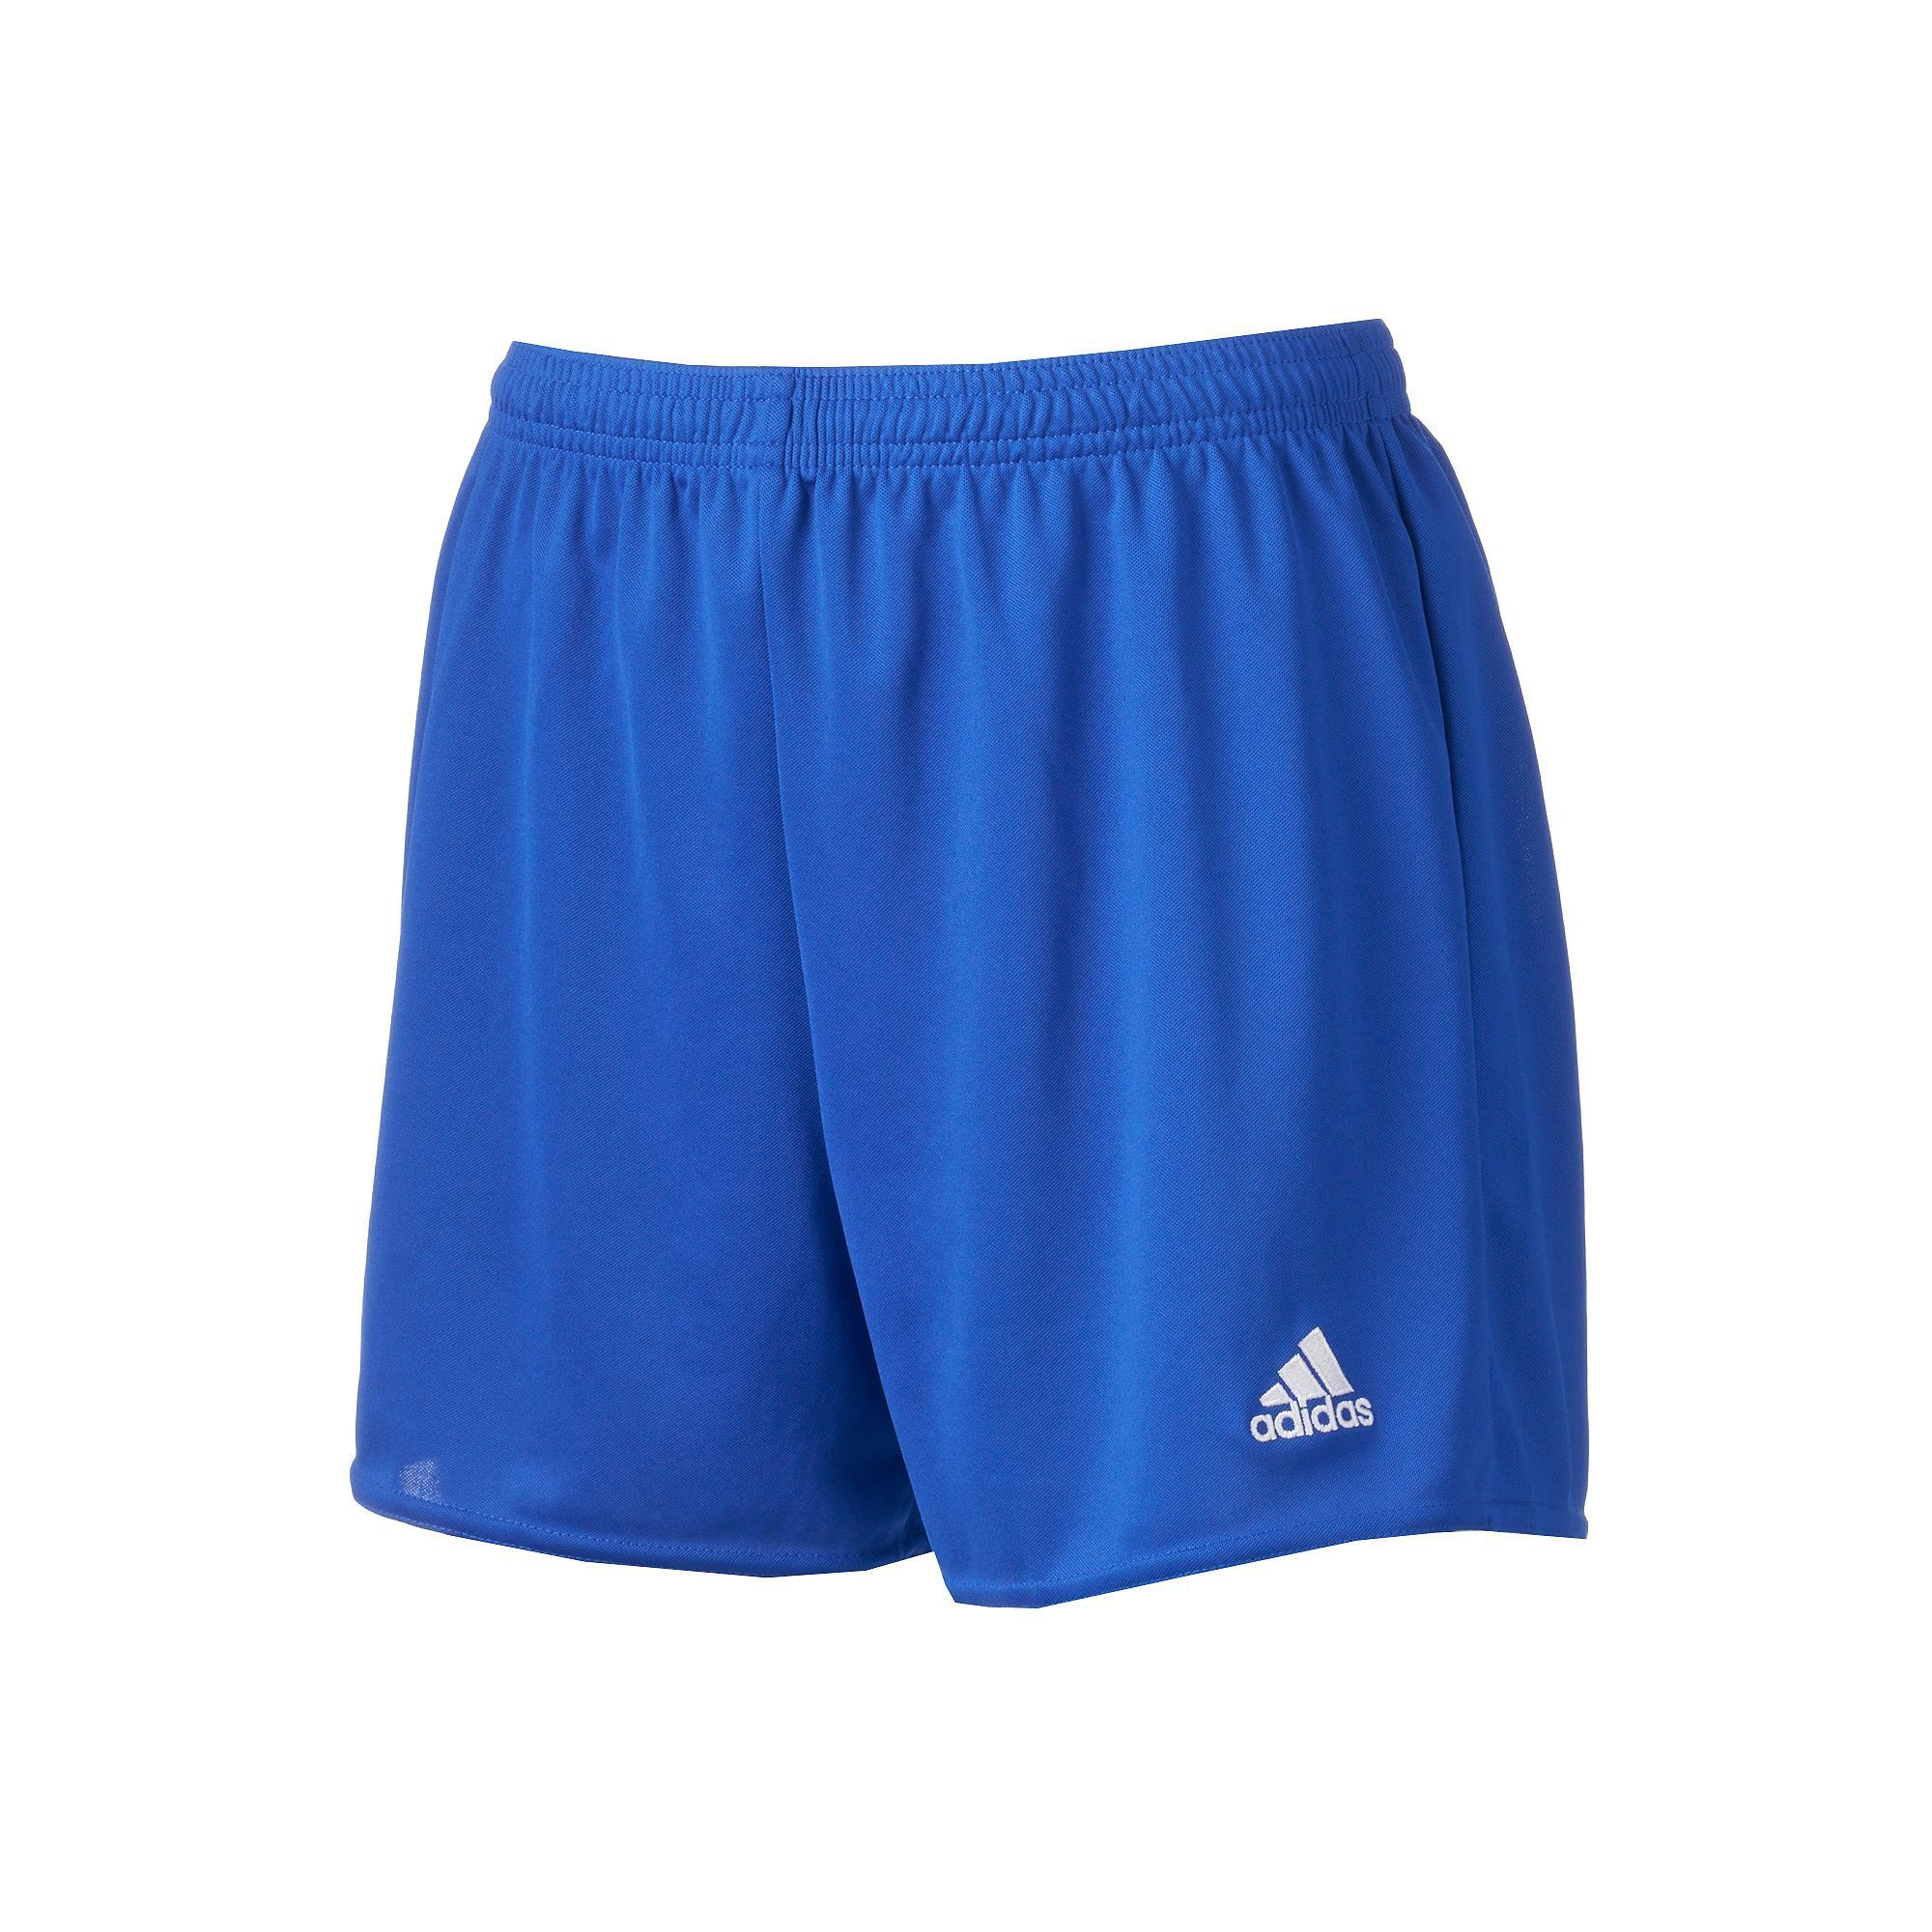 07a57ec1055 Women's adidas climalite Womens Pama 16 Soccer Shorts in 2019 ...